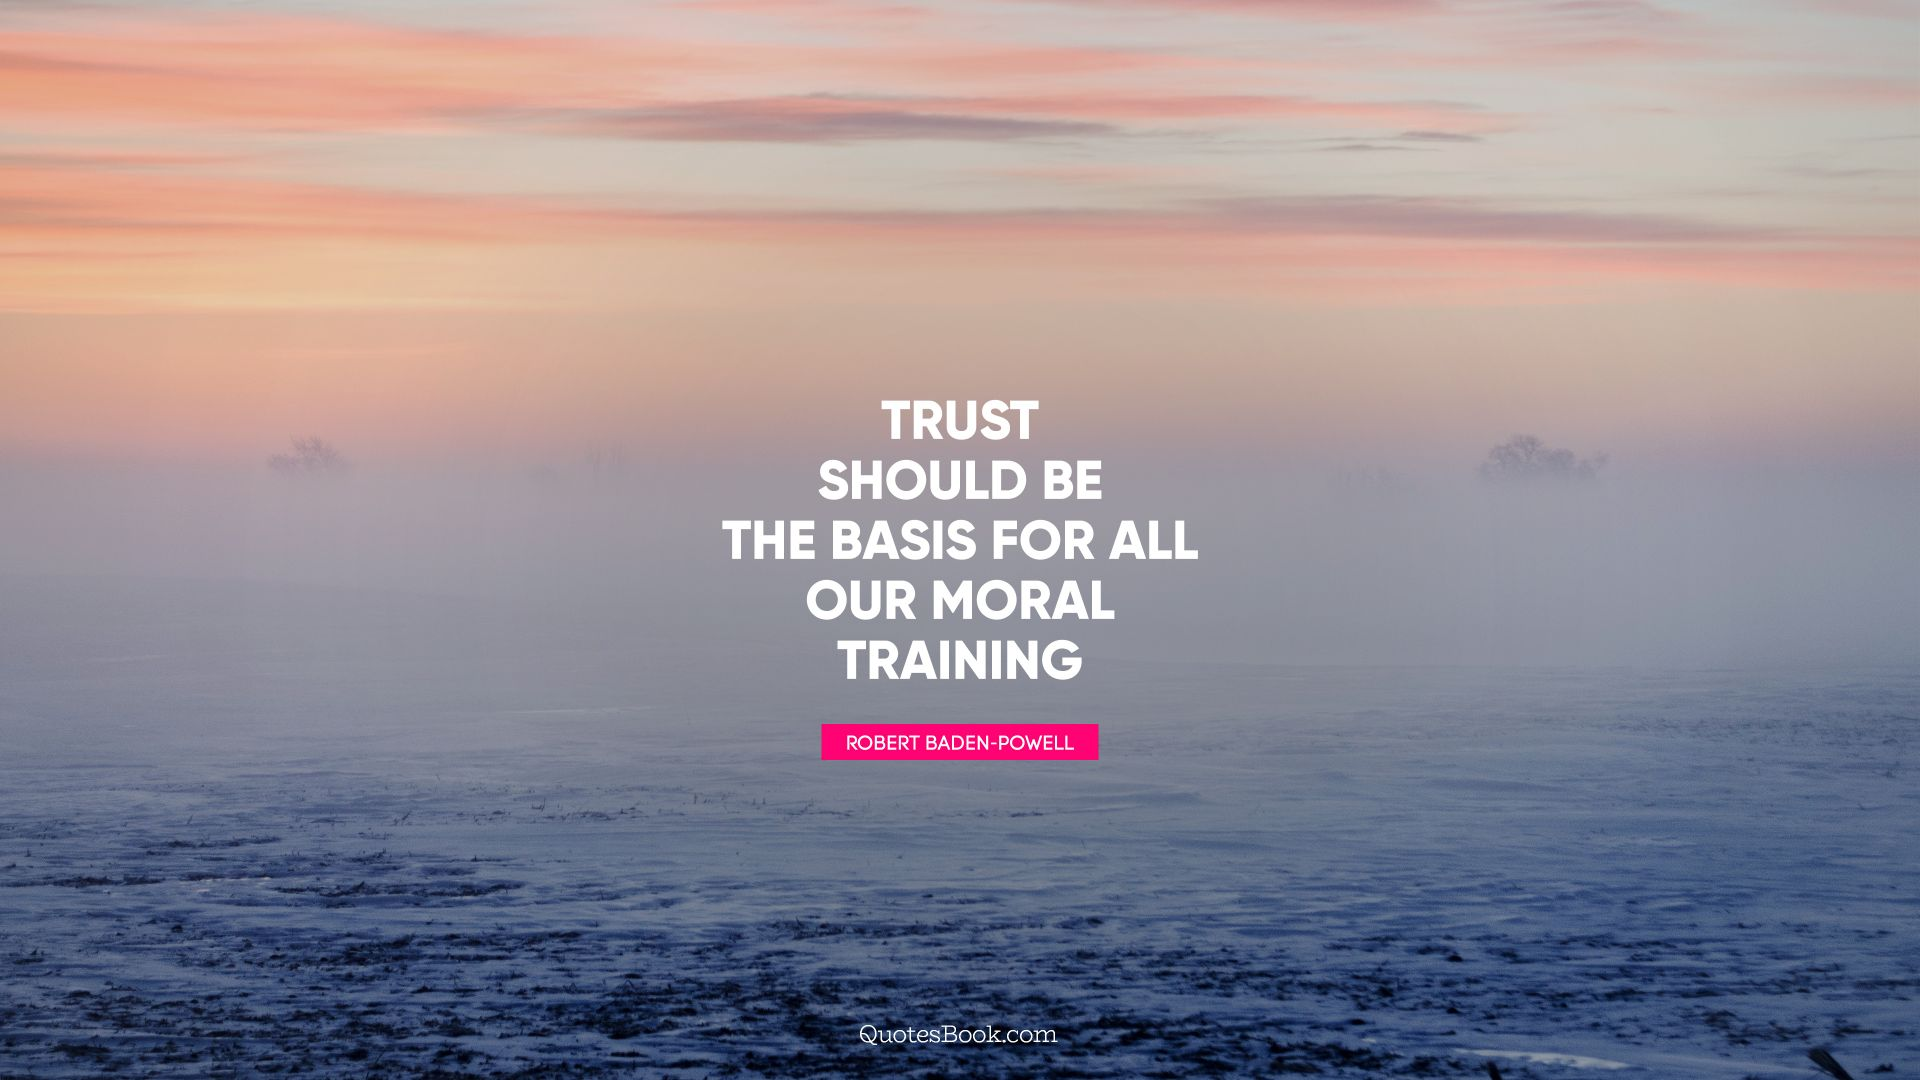 Trust should be the basis for all our moral training. - Quote by Robert Baden-Powell